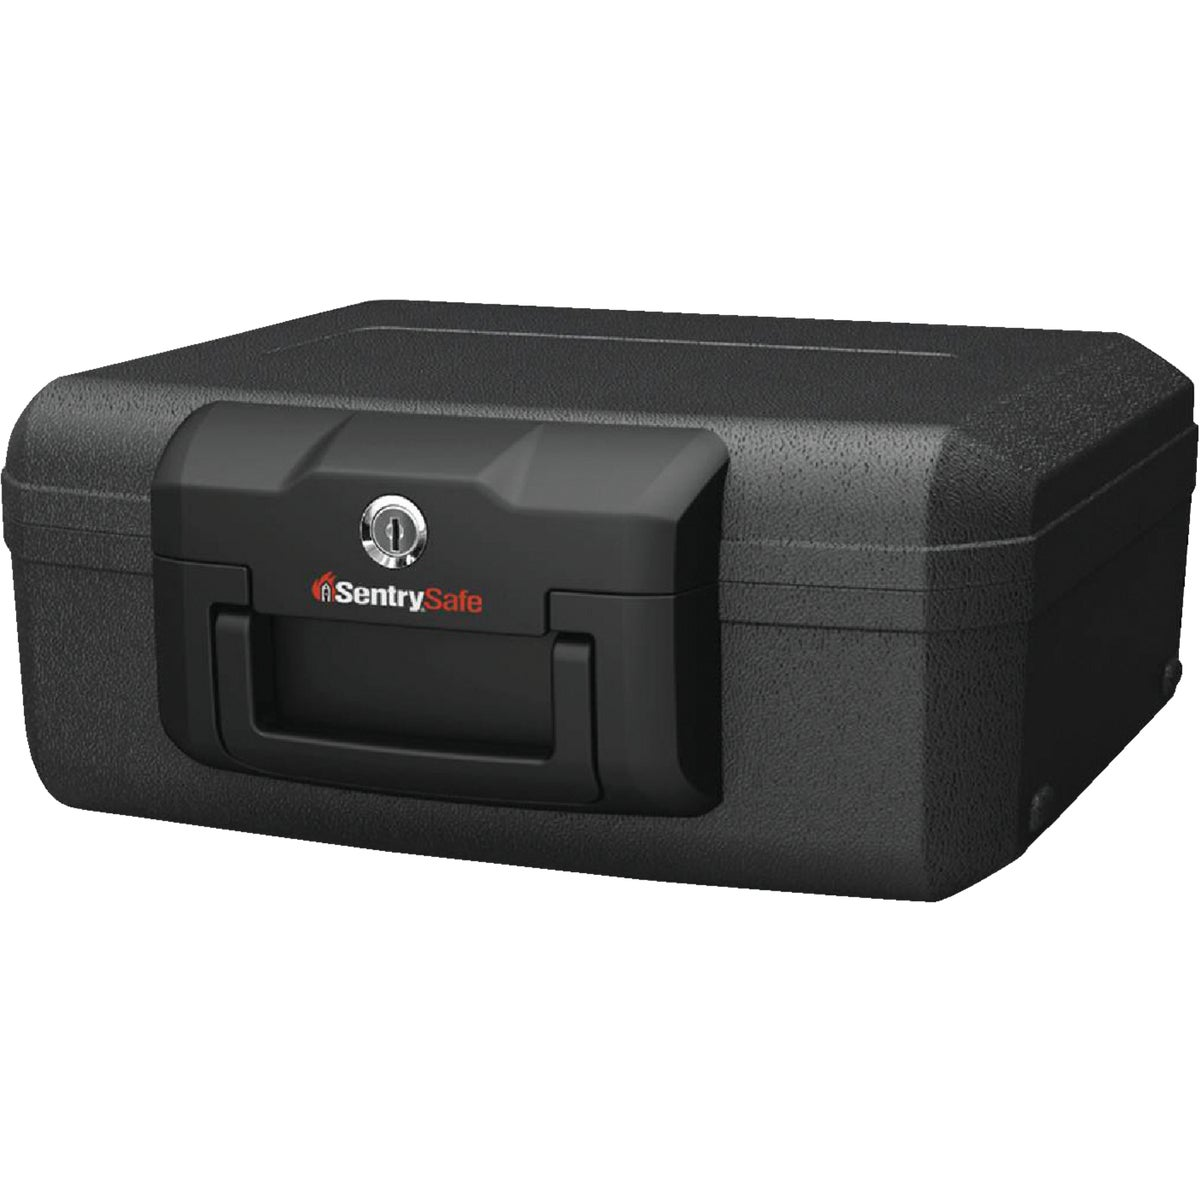 "11"" DEEP SECURITY CHEST - 1200 by Sentry Safes"